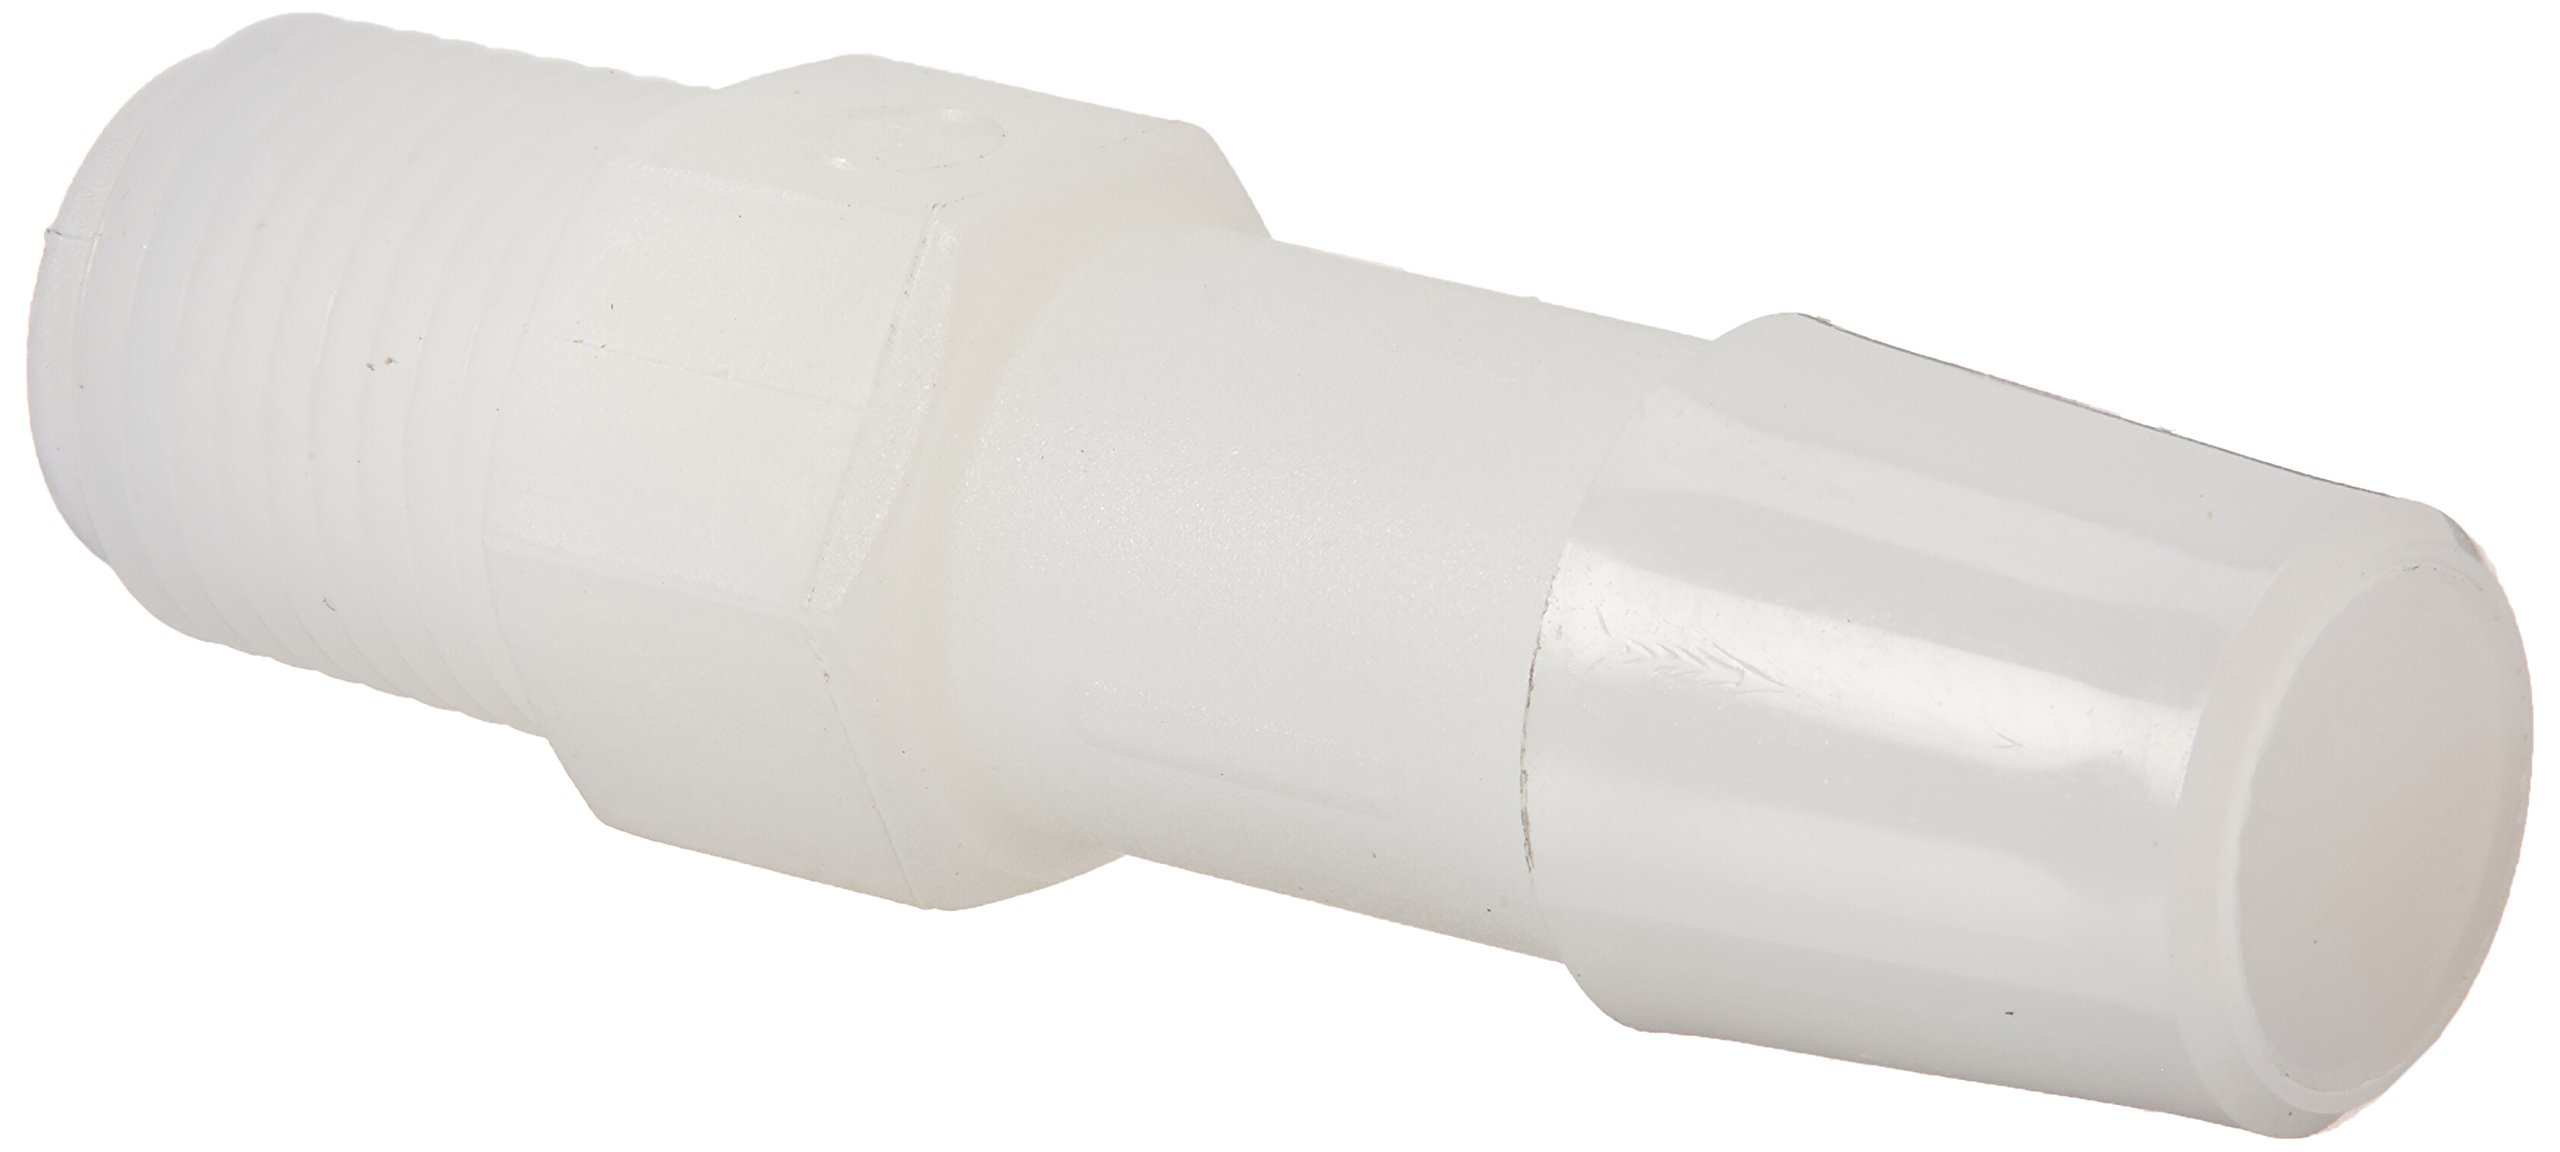 Eldon James A2-6NN Natural Nylon Adapter Fitting, 1/8-27 NPT to 3/8'' Hose Barb (Pack of 10) by Eldon James